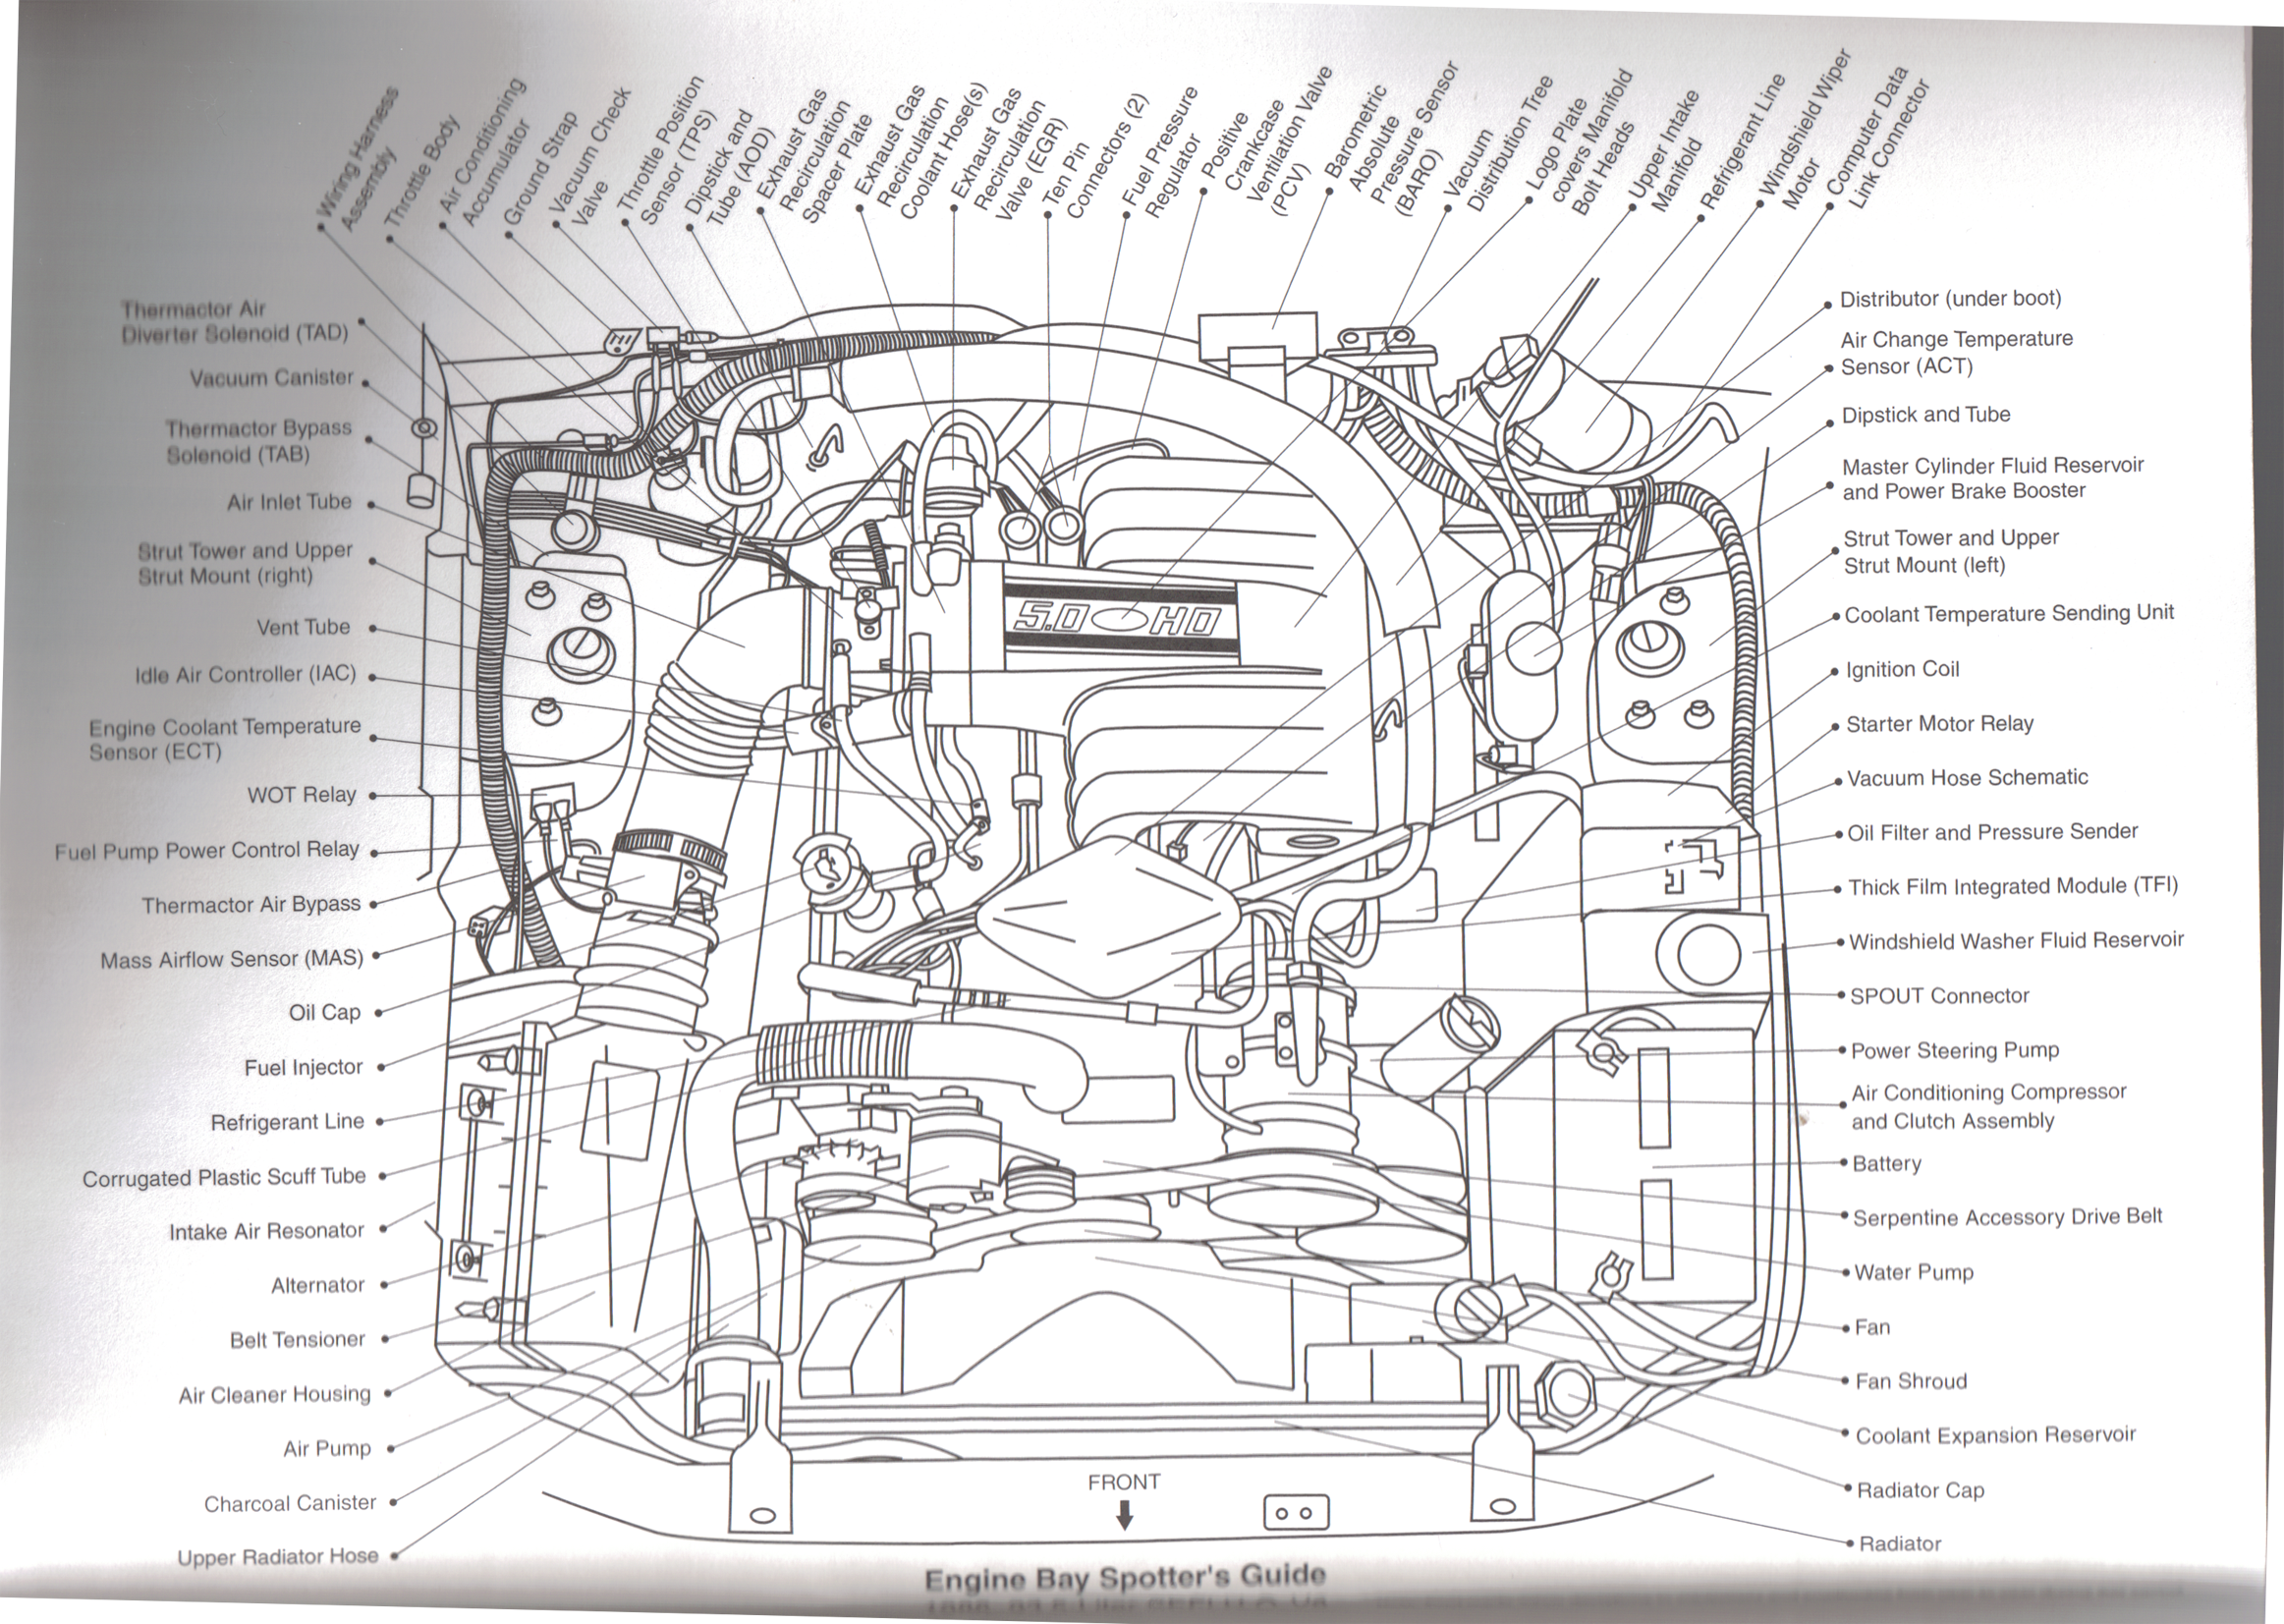 92 mustang engine diagram | bear-nature wiring diagram -  bear-nature.ilcasaledelbarone.it  ilcasaledelbarone.it